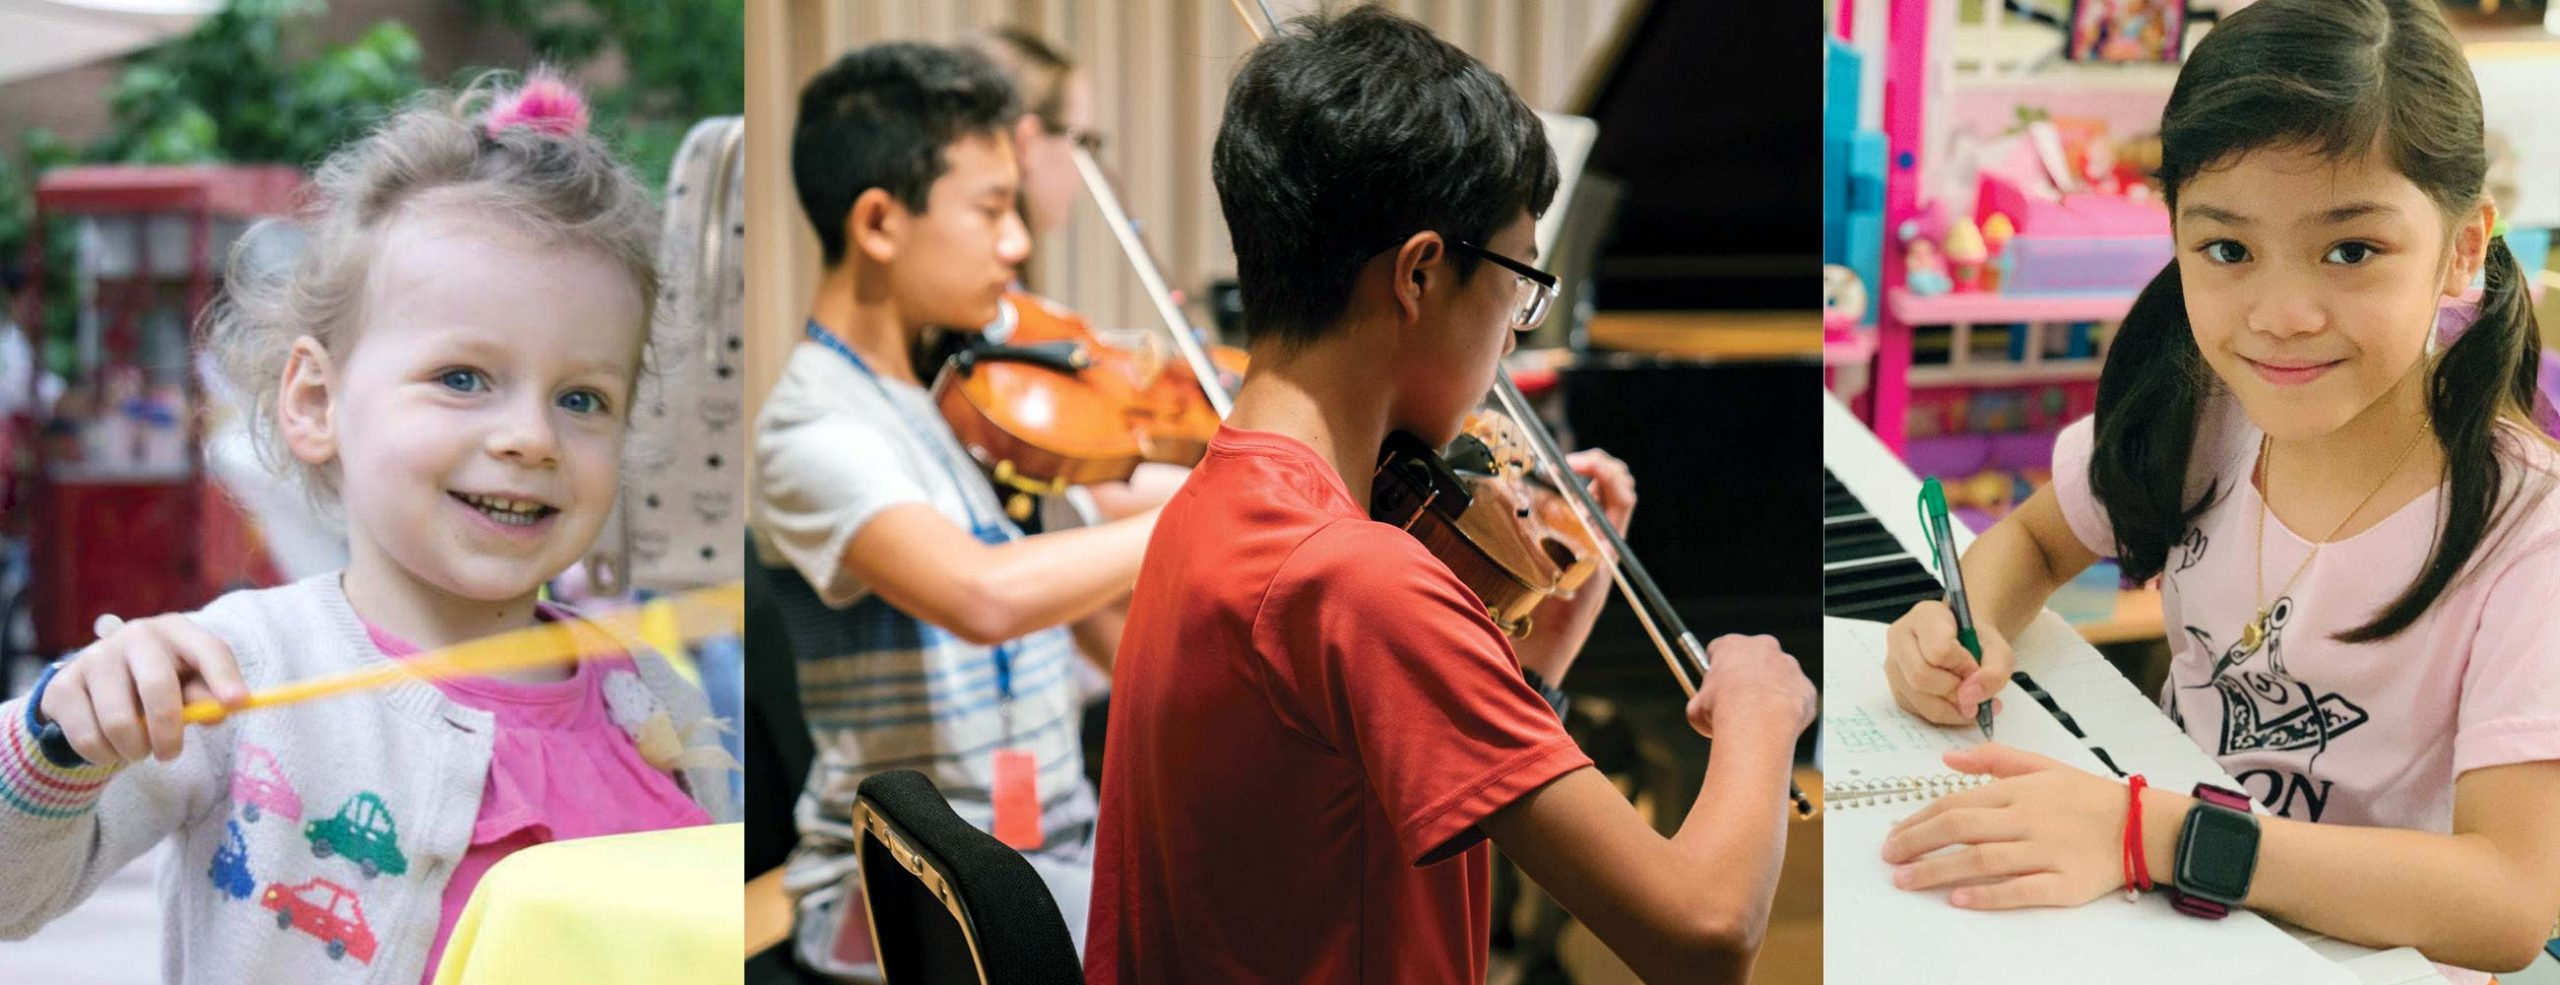 Photo on left of young pale skinned girl with curly blonde hair holding a mallet, photo in middle of two boys playing violins, photo on right of young girl with black hair in pigtails holding a pencil and smiling